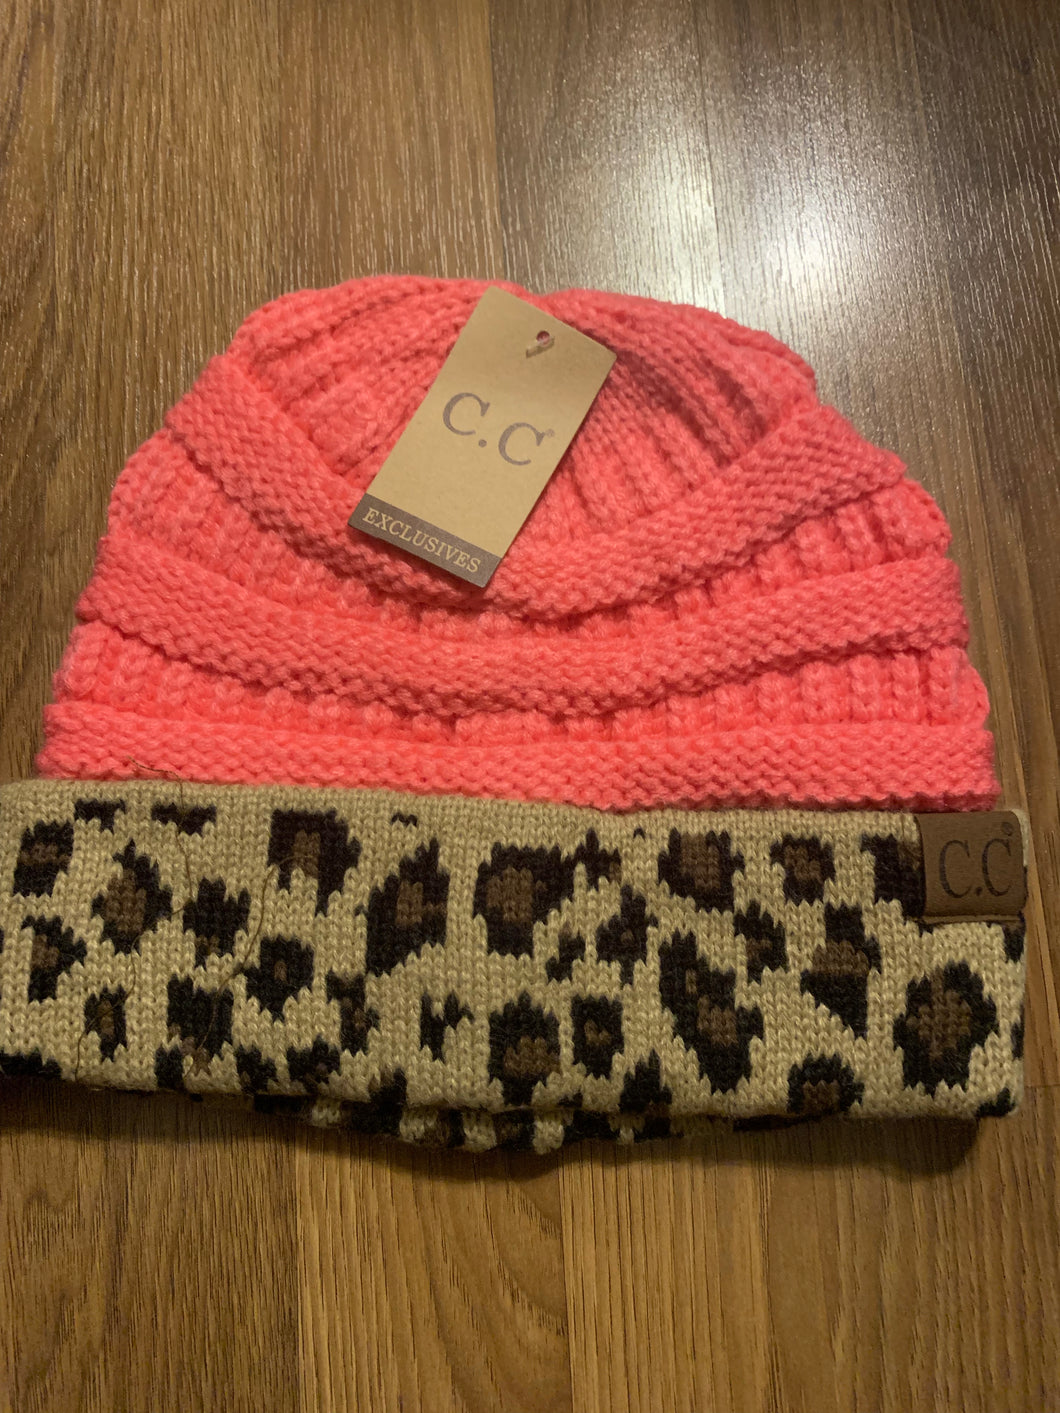 Animal print pink C.C hat beanie